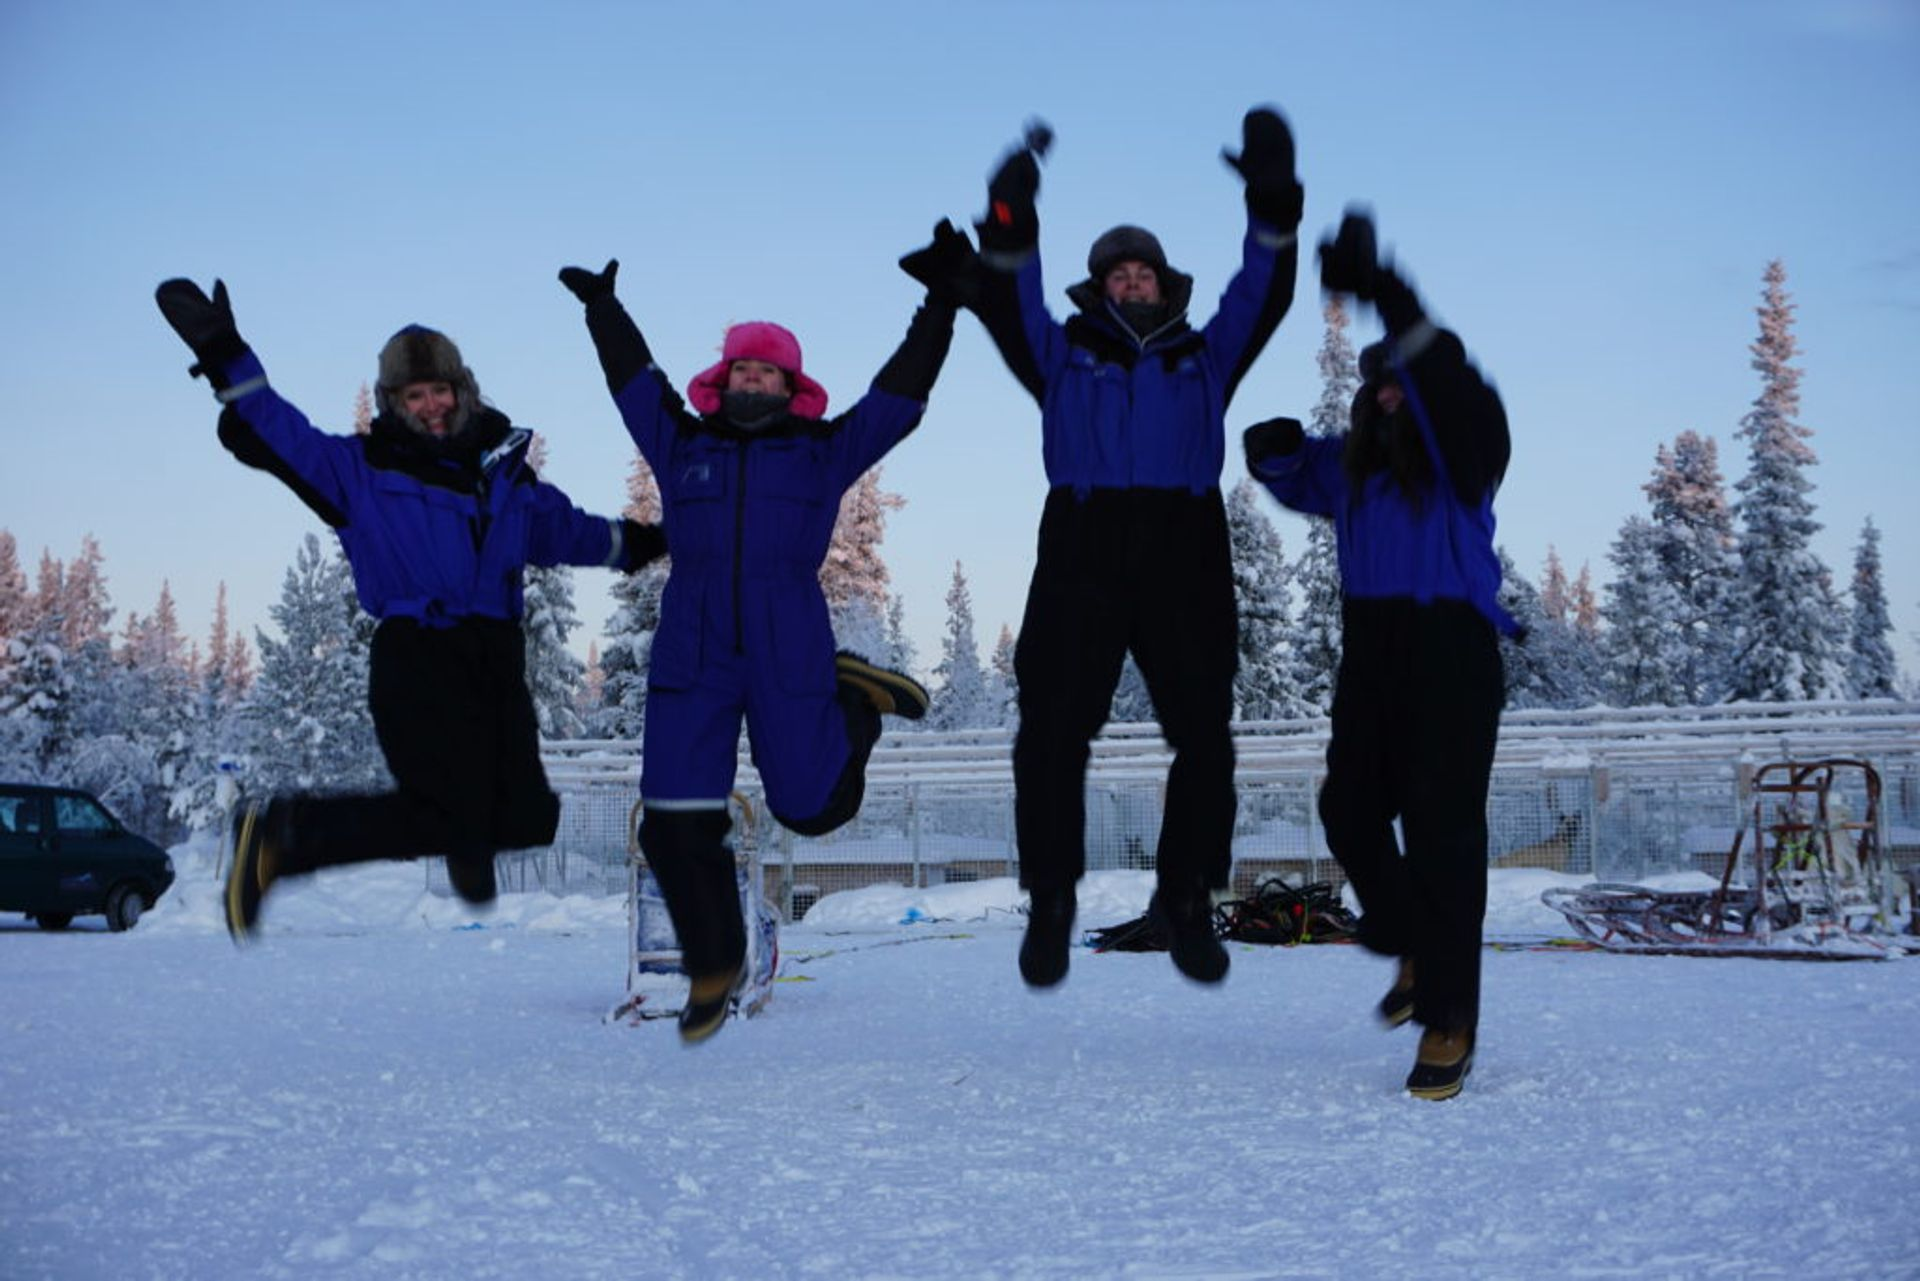 Us being really excited about the dog sledding, Source: Inez